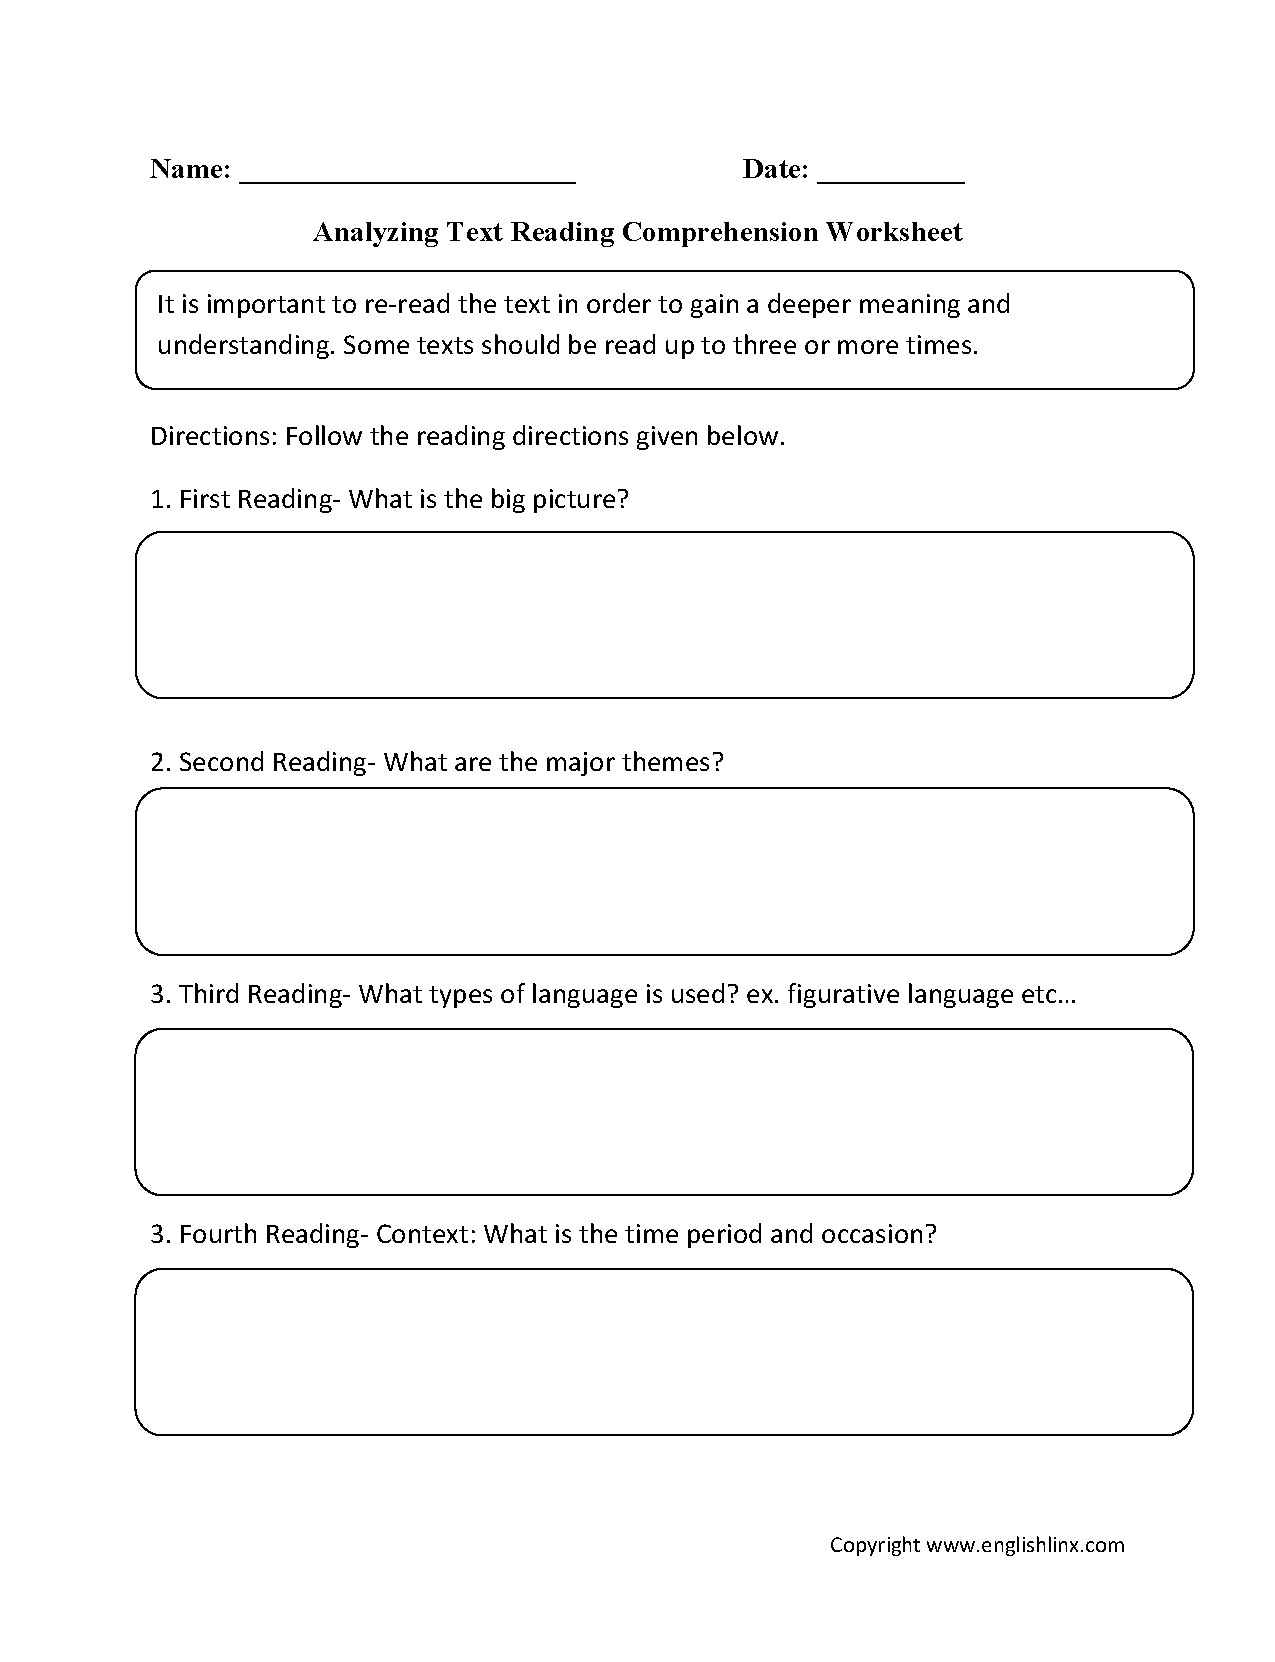 Worksheets Easy Reading Comprehension Worksheets englishlinx com reading comprehension worksheets worksheets